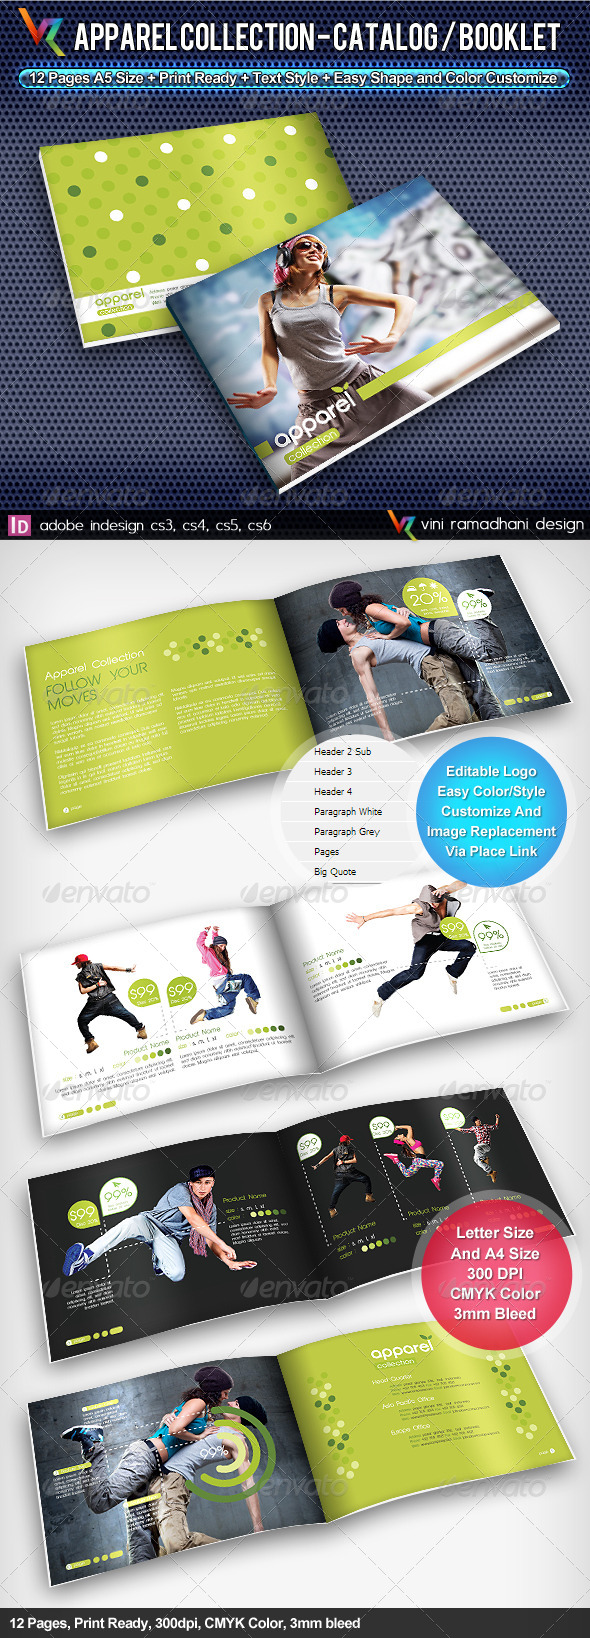 GraphicRiver Apparel Collection Catalog Brochure 4087611